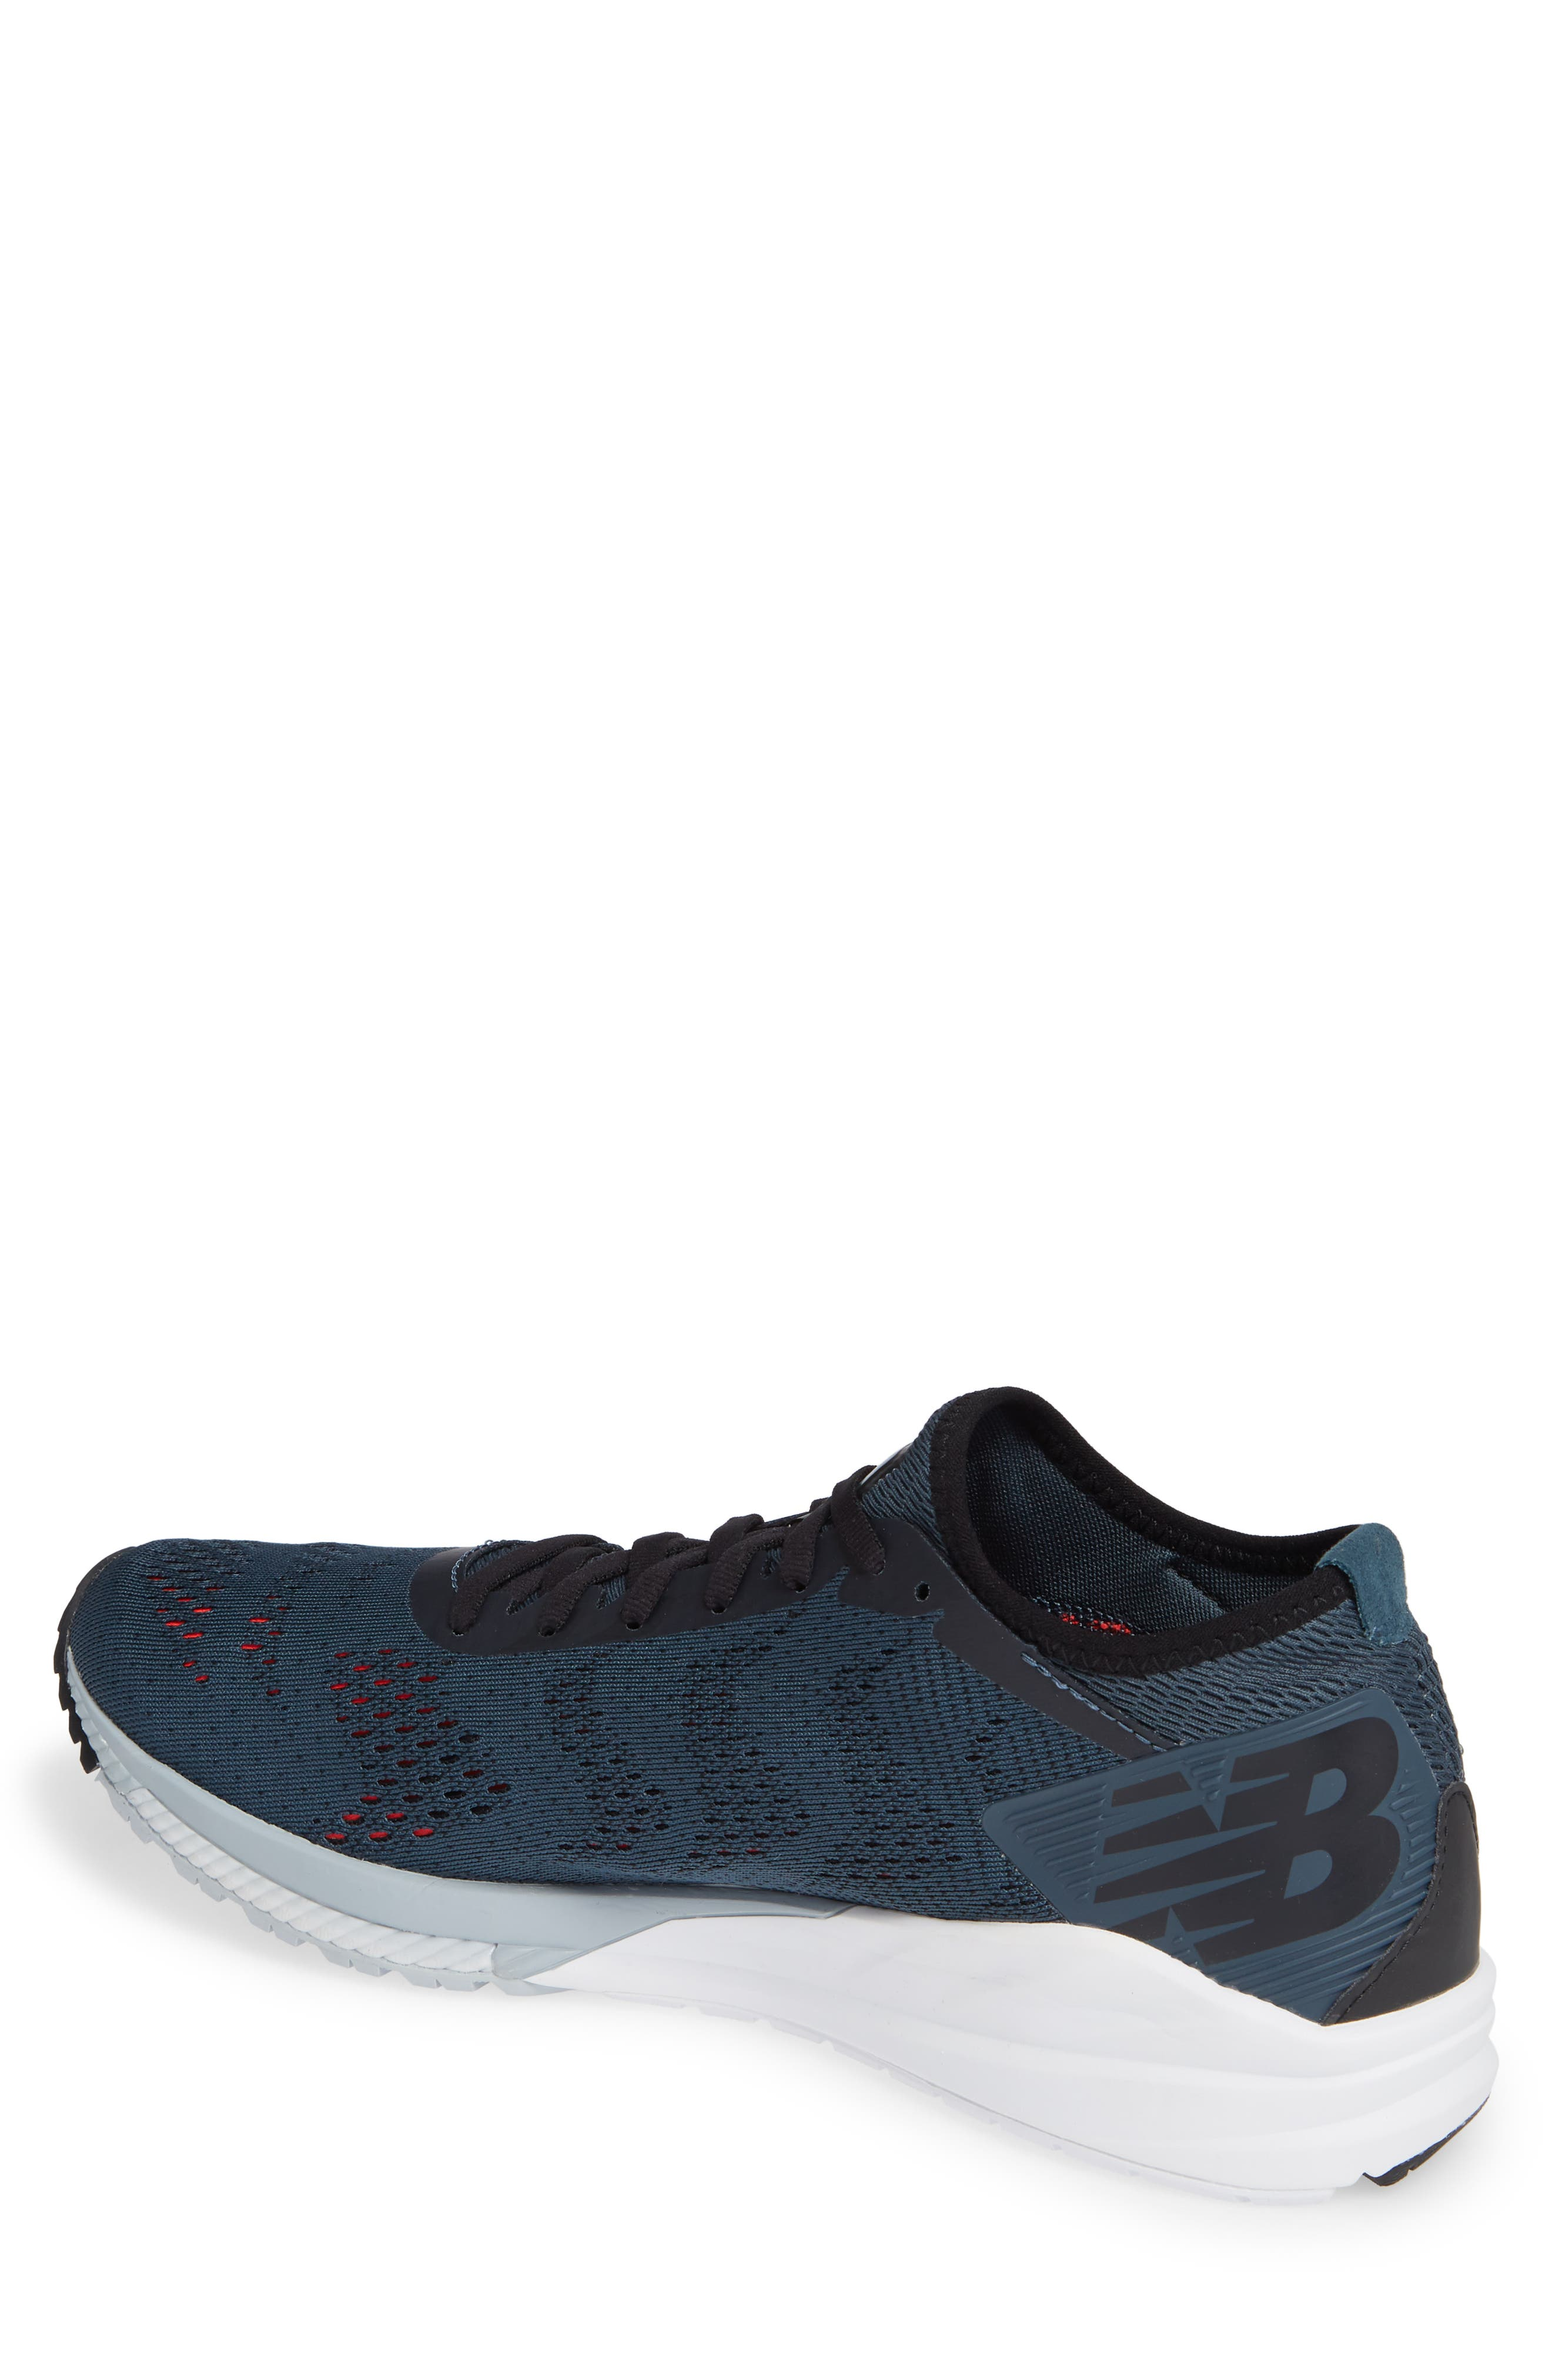 NEW BALANCE, FuelCell Impulse Running Shoe, Alternate thumbnail 2, color, PETROL